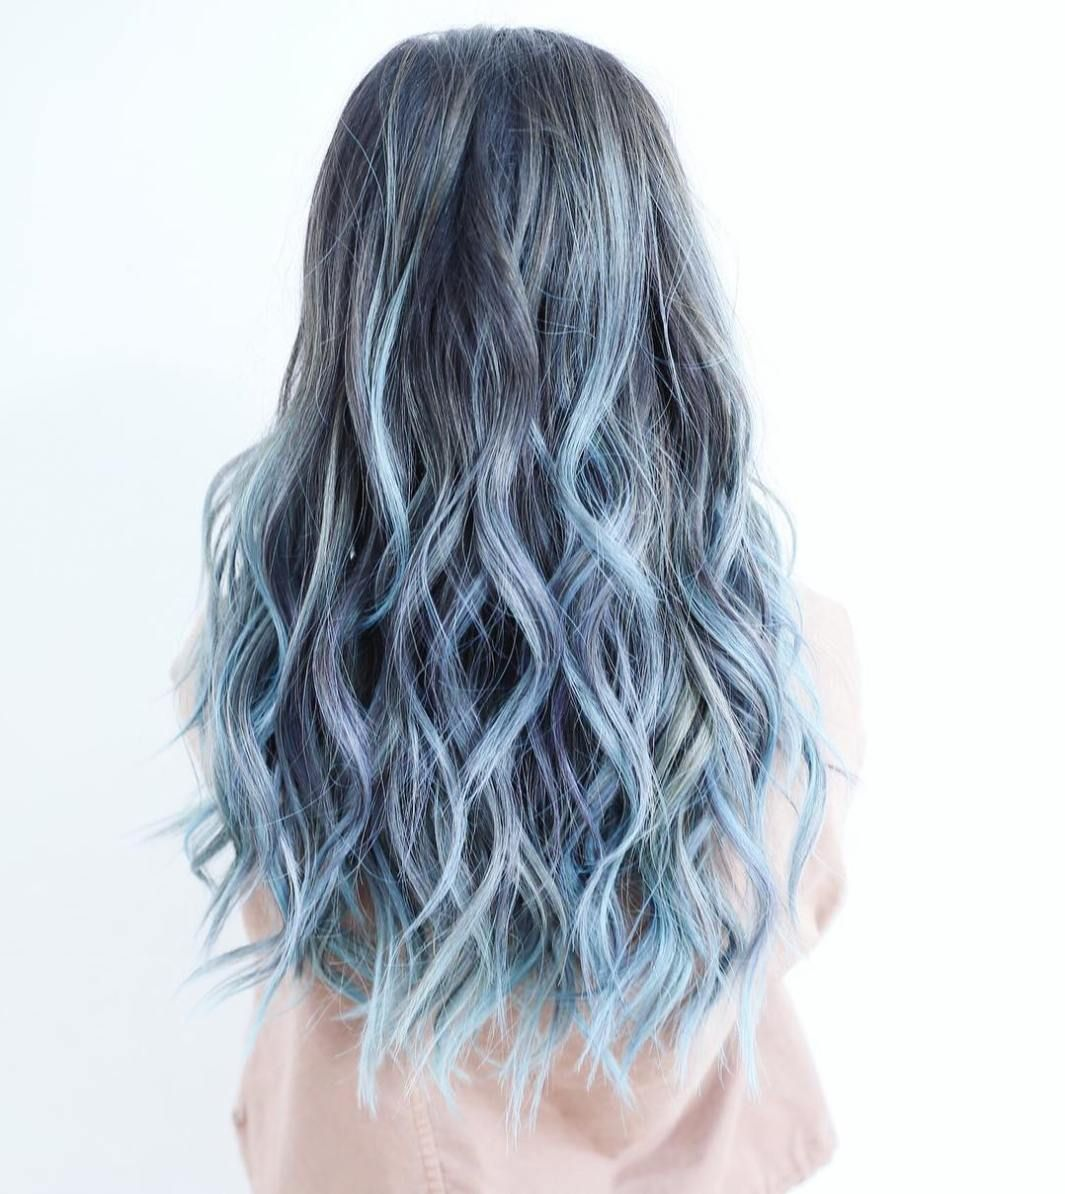 Blue Wigs Lace Frontal Wigs Cheap Human Wigs Ombre Teal Hair Pastel Blue Ombre Hair Blue Cosplay Wig